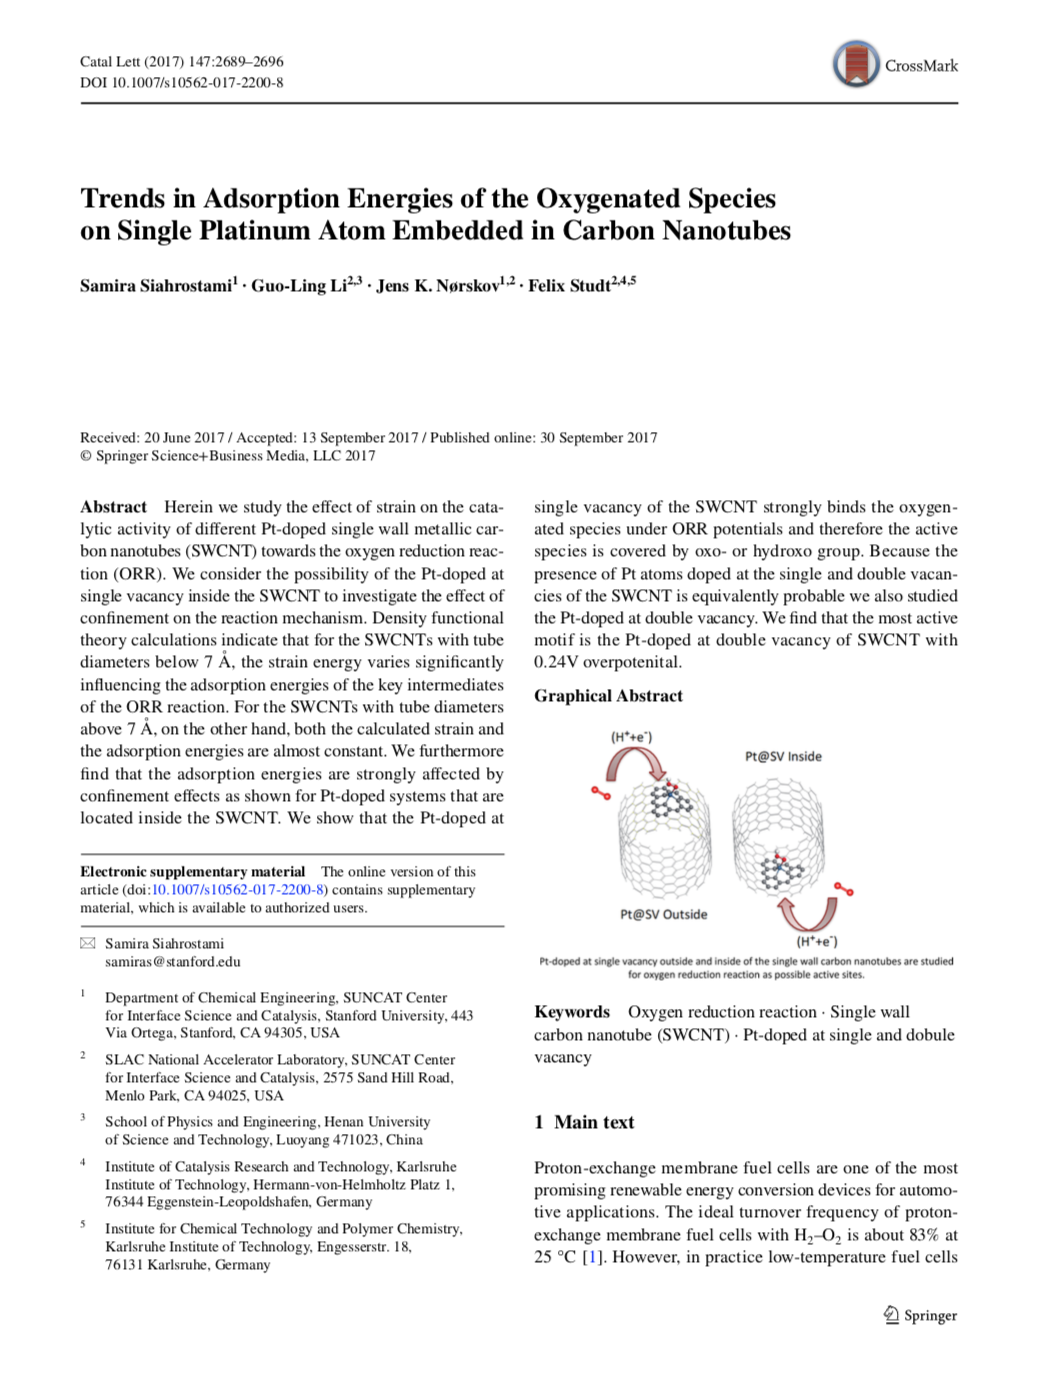 Trends in Adsorption Energies of the Oxygenated Species on Single Platinum Atom Embedded in Carbon N